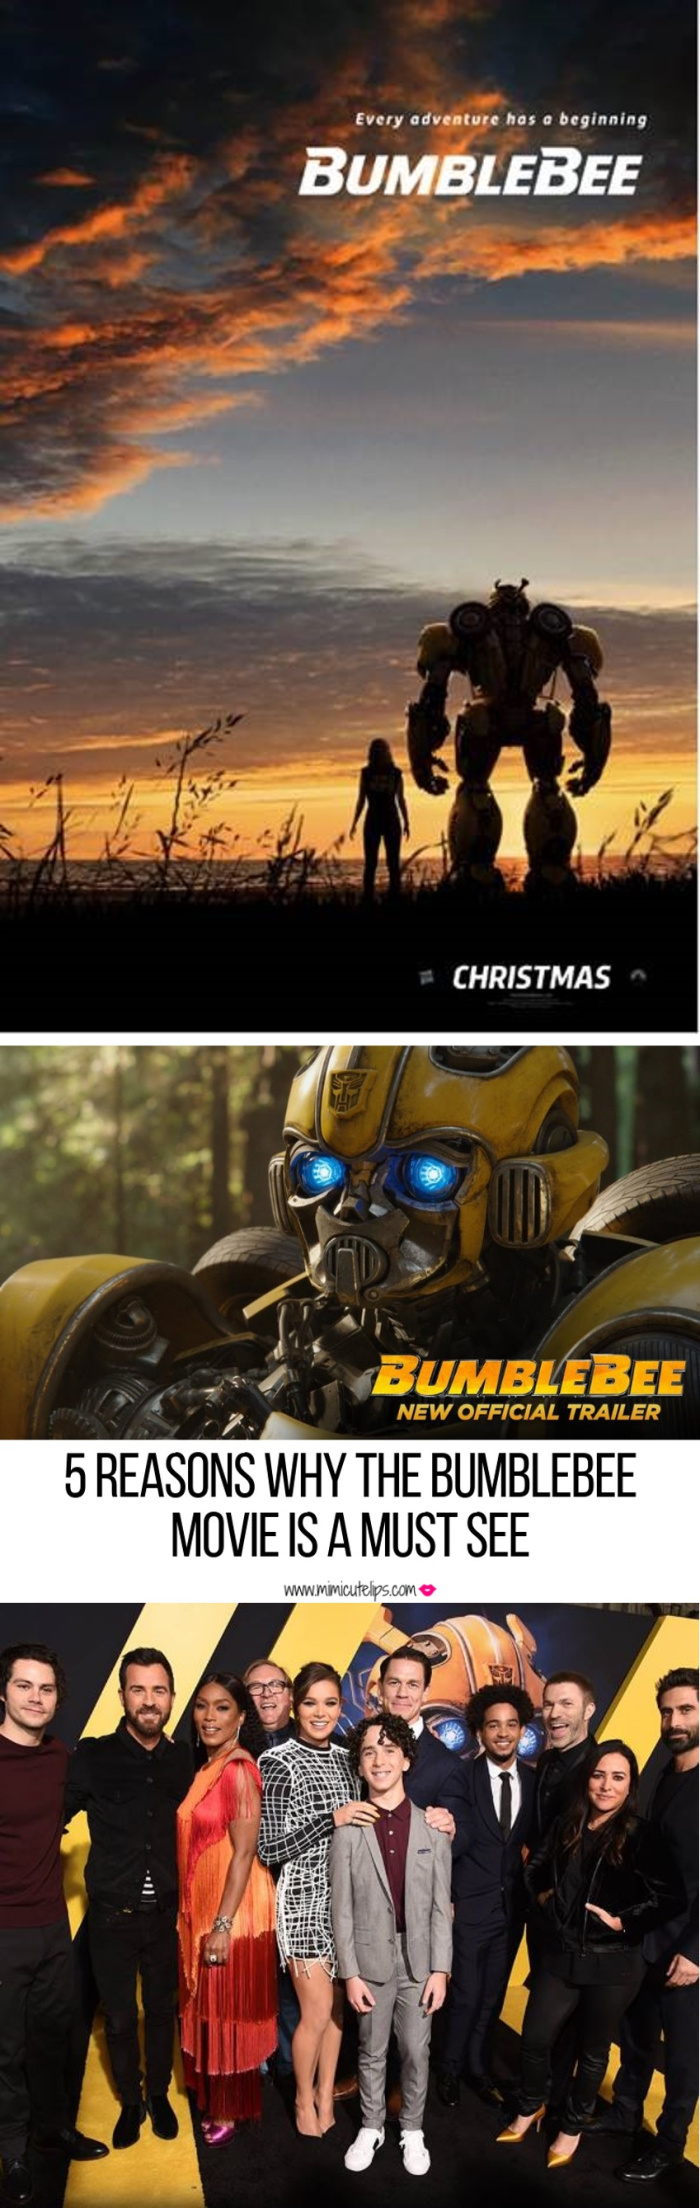 Lifestyle Media Correspondent MimiCuteLips shares her Bumblebee Movie Review after attending a movie screening in Washington, DC. #BumblebeeMovie